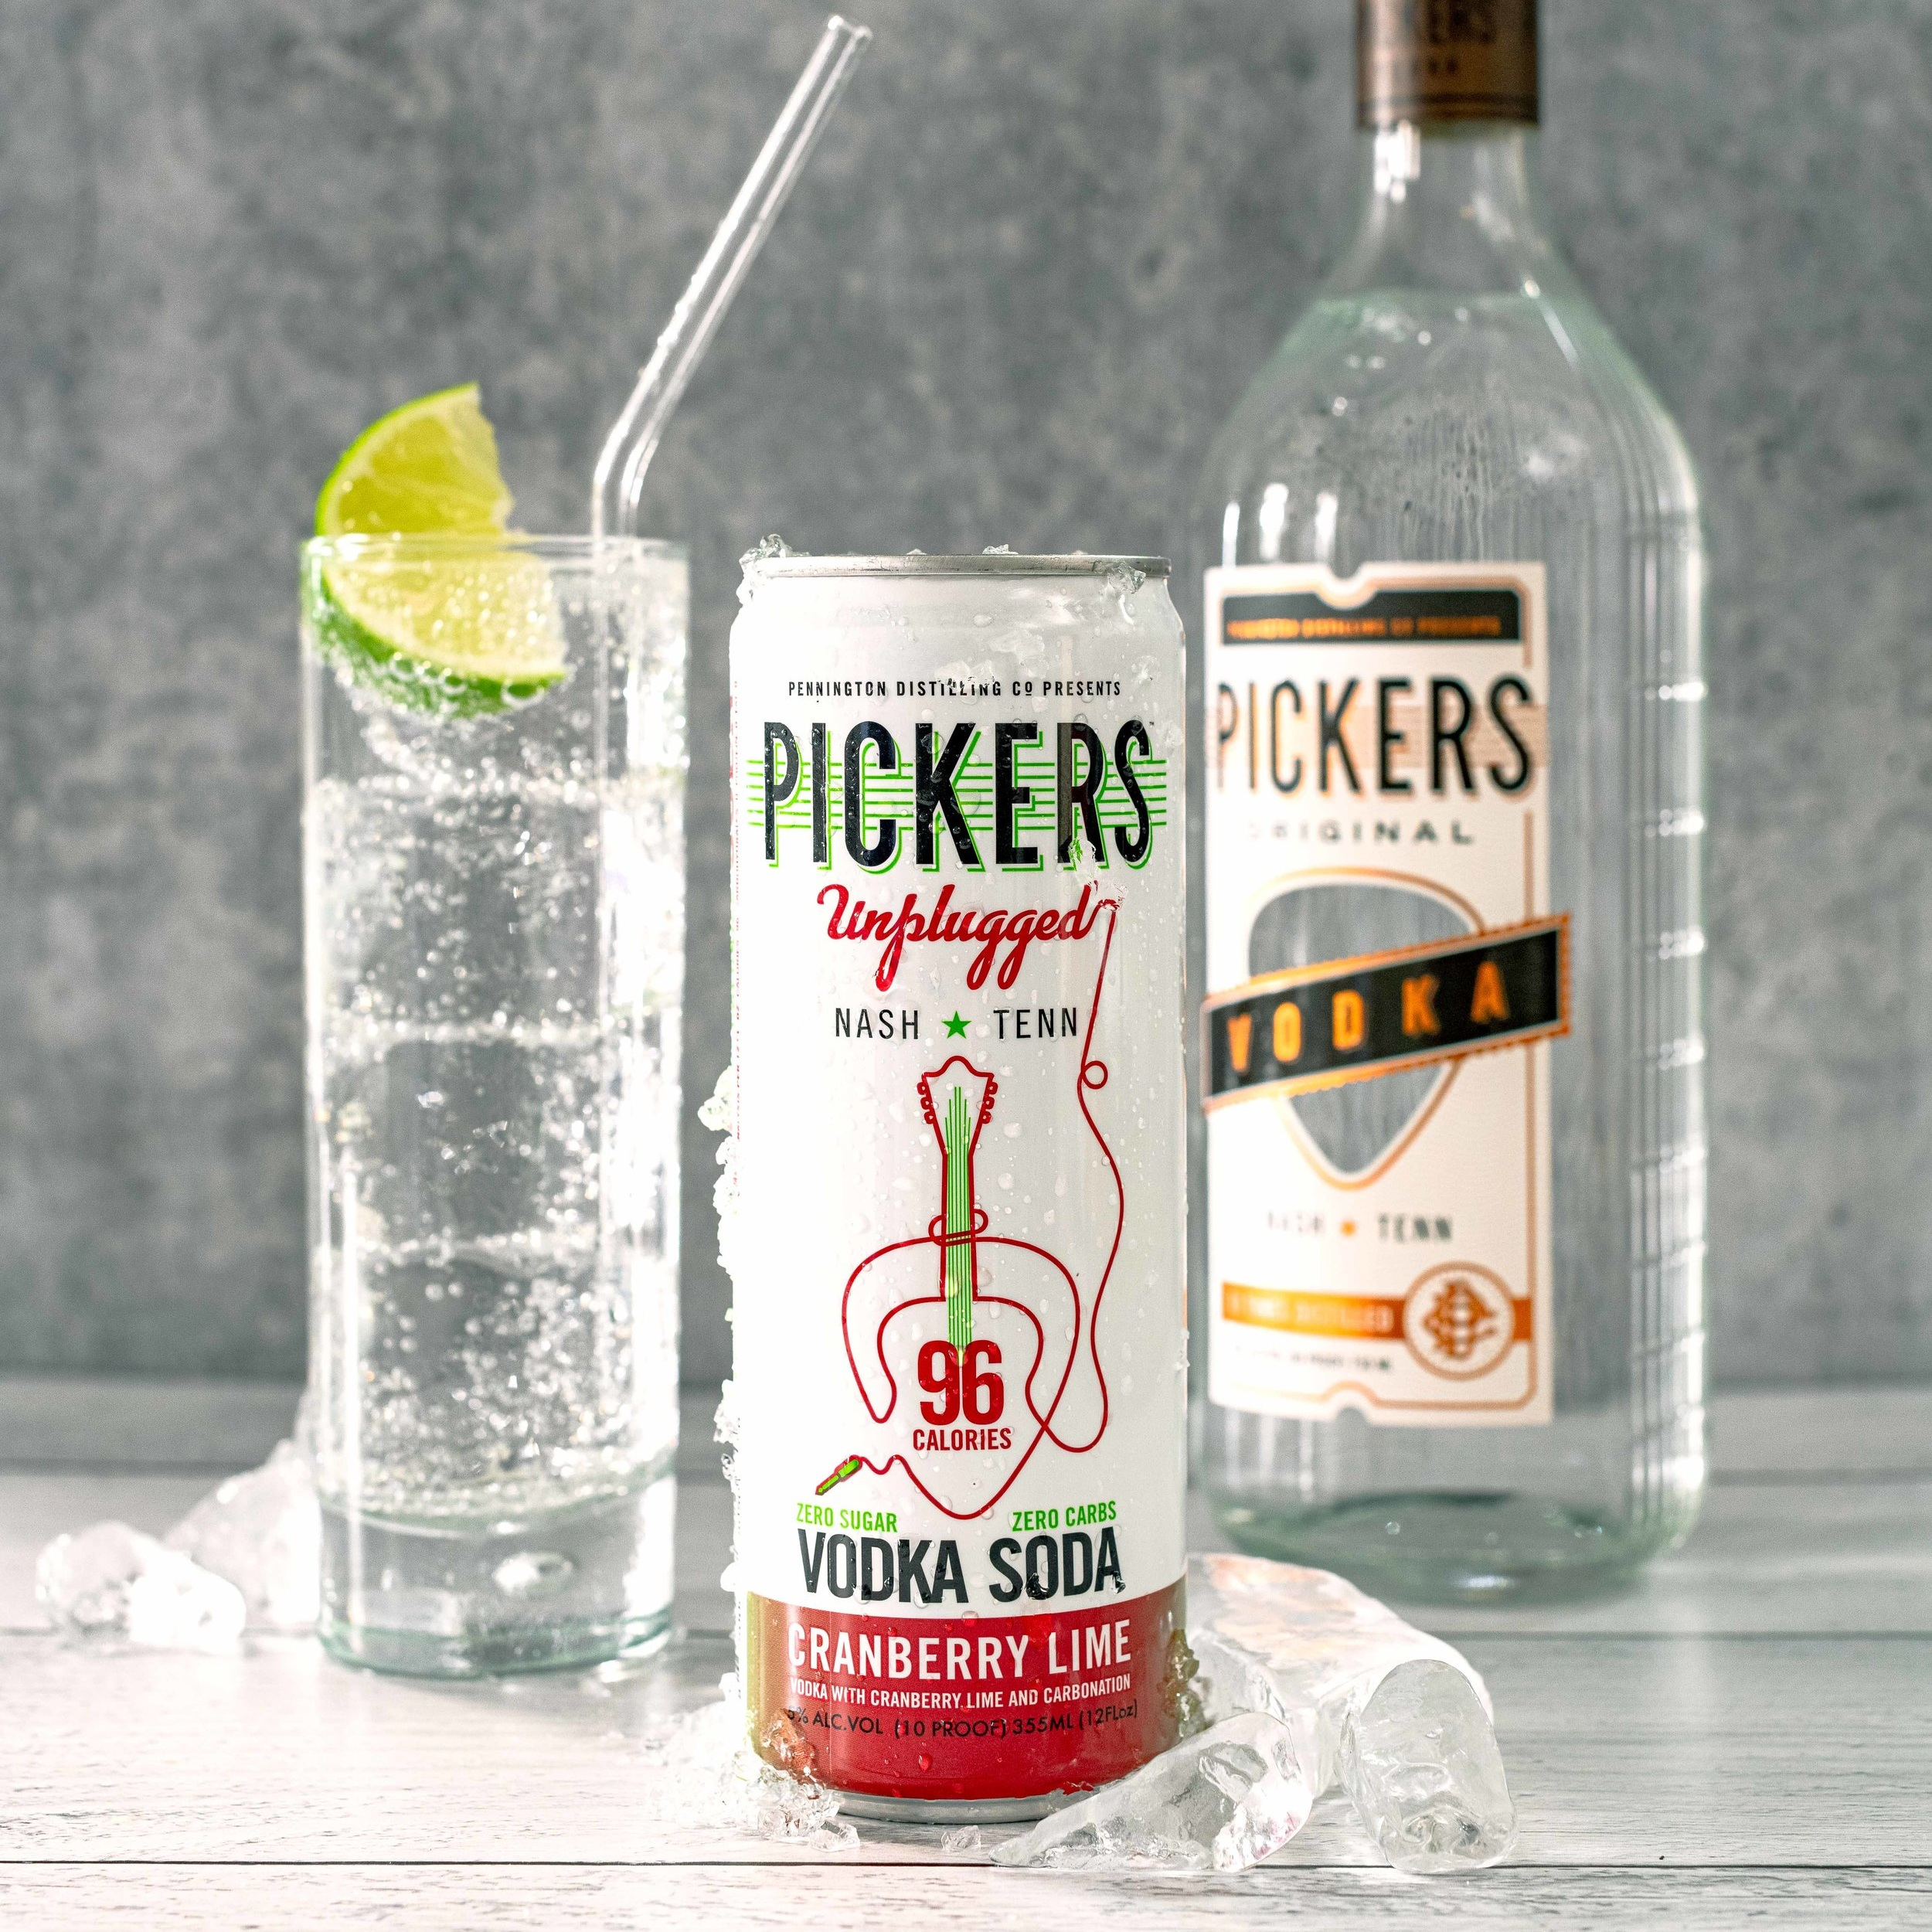 Cranberry Lime Vodka Soda - Pickers Vodka and sparkling water with a hint of natural Cranberry Lime flavor.